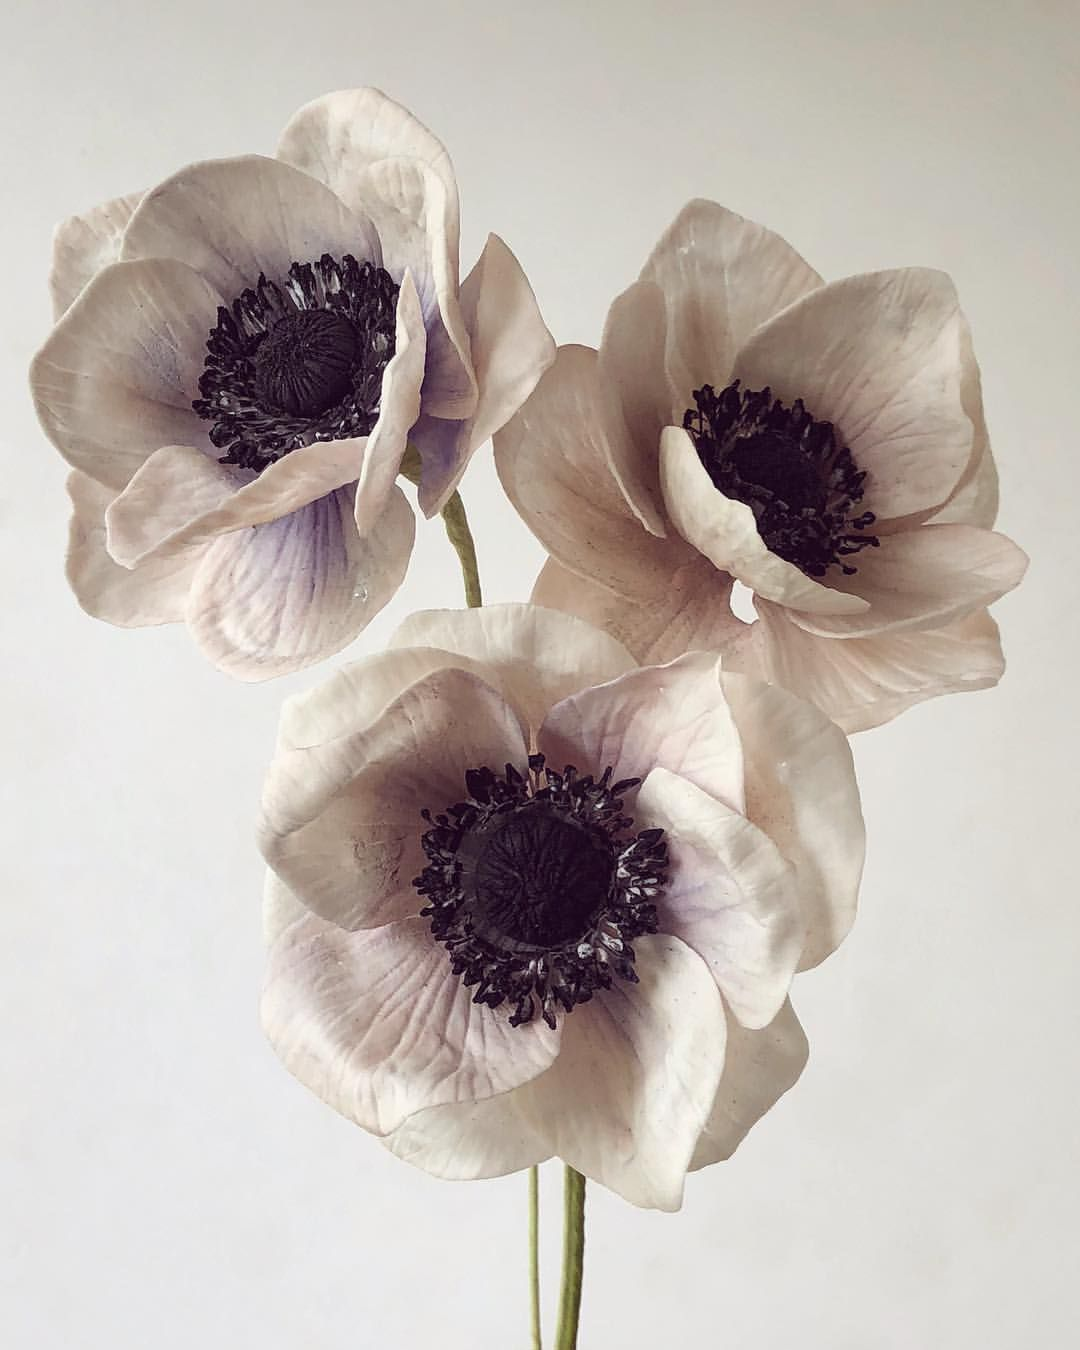 Sugar Anemones Black And White Flower Simplicity On This First Day Of June Because Of The Closing Of The Anemo With Images White Flowers Beautiful Flowers Flower Meanings